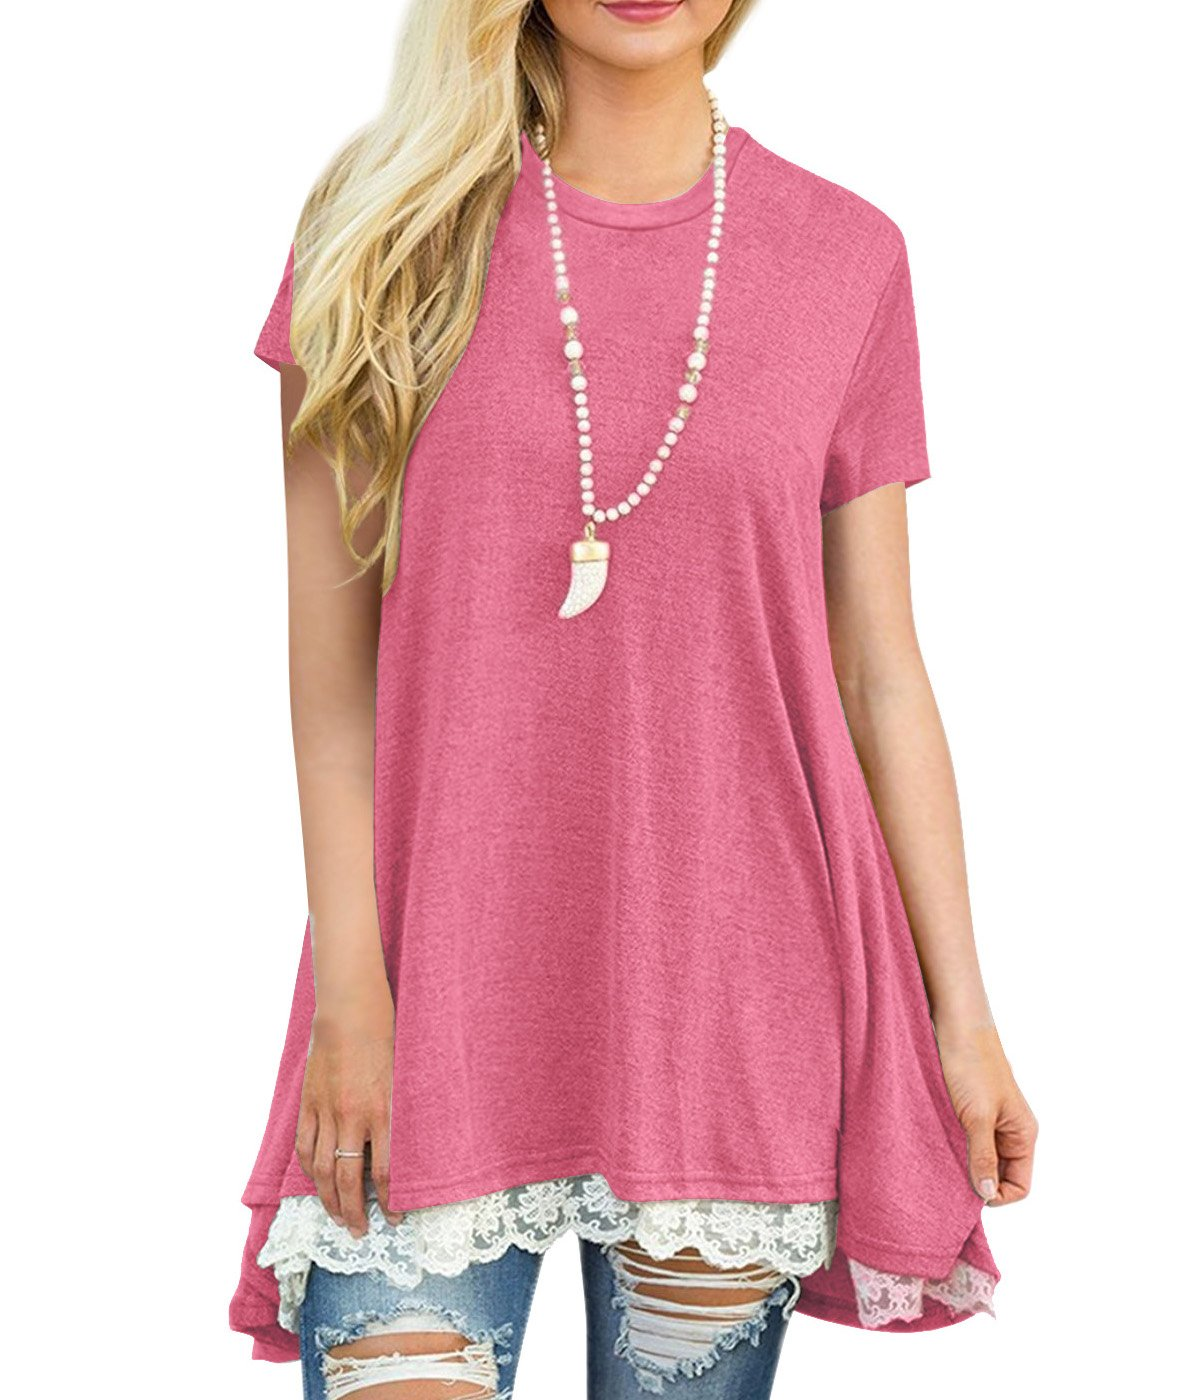 Rdfmy Women's Lace Short Sleeve Tops Casual Round Neck Top Blouses Pink S